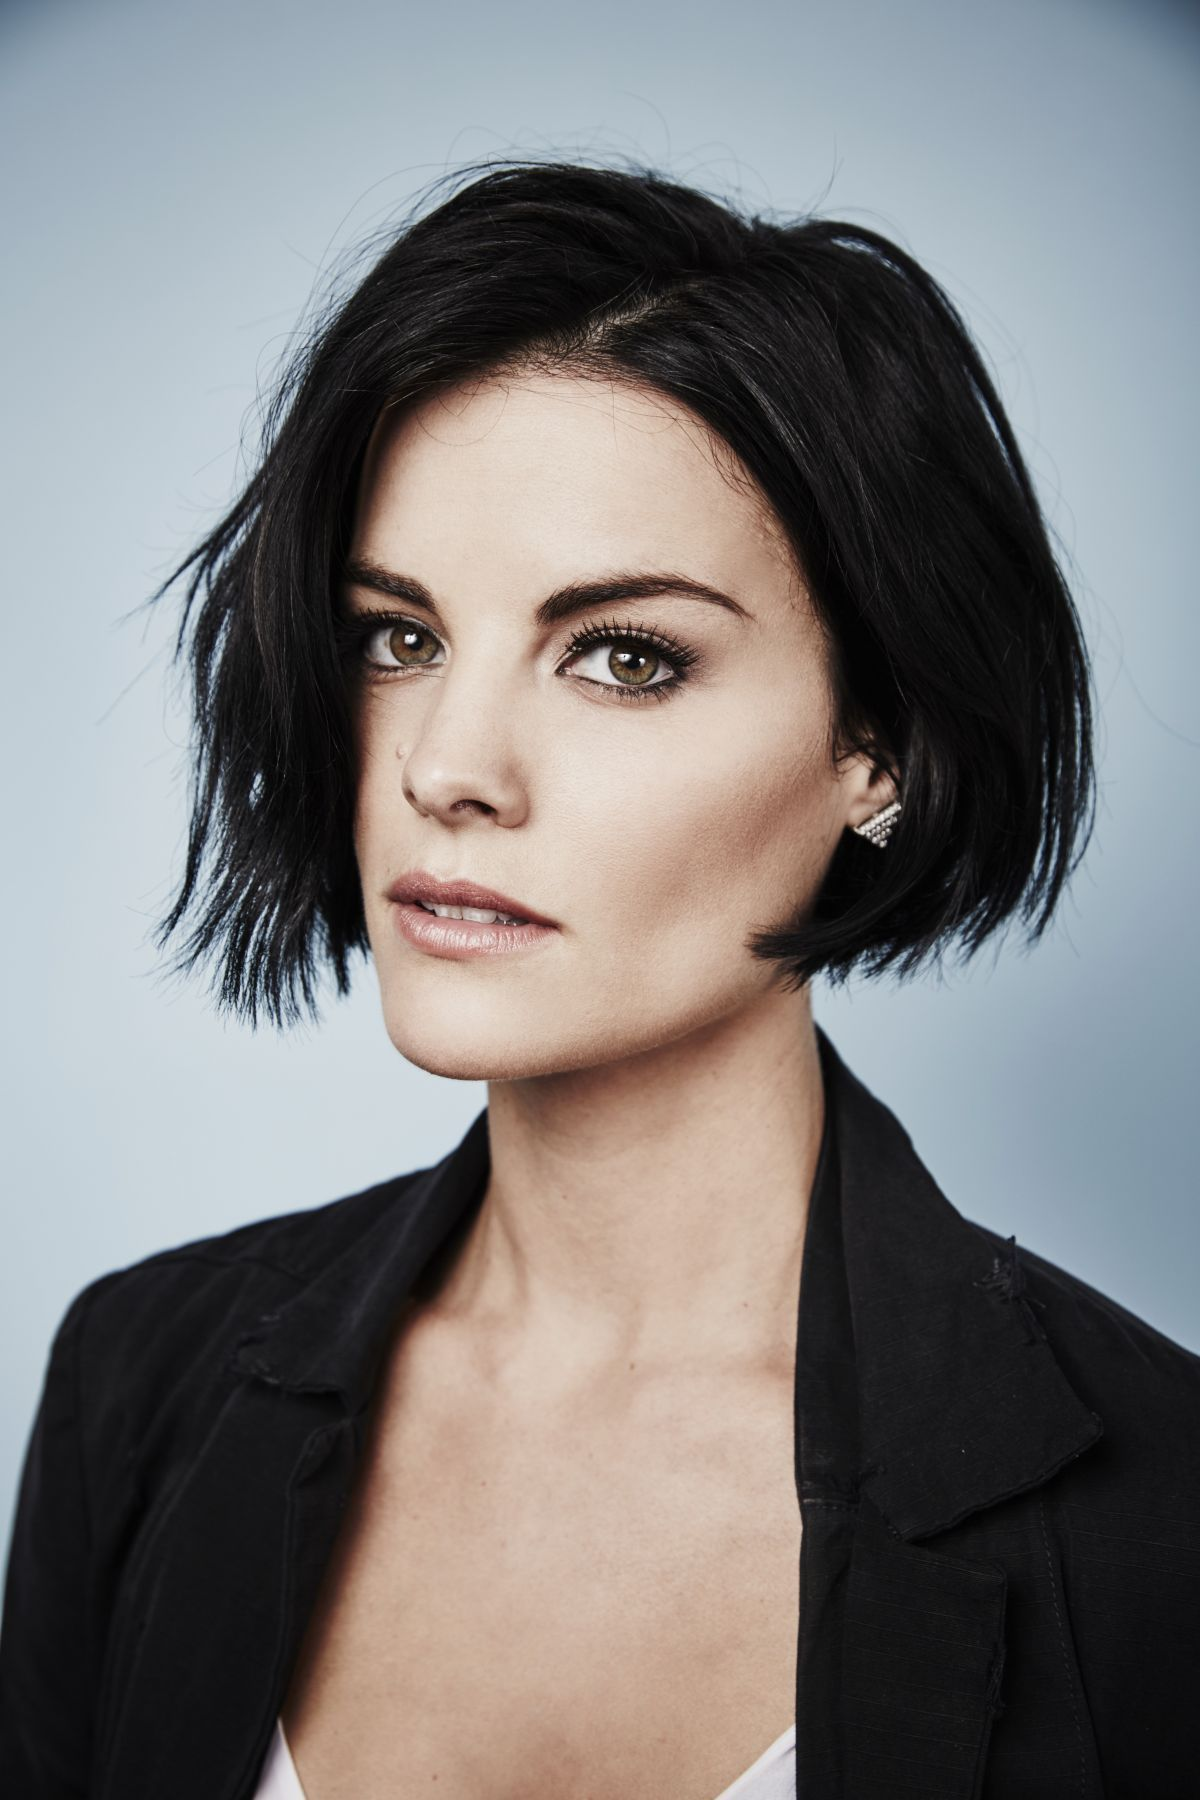 jaimie alexander fan site